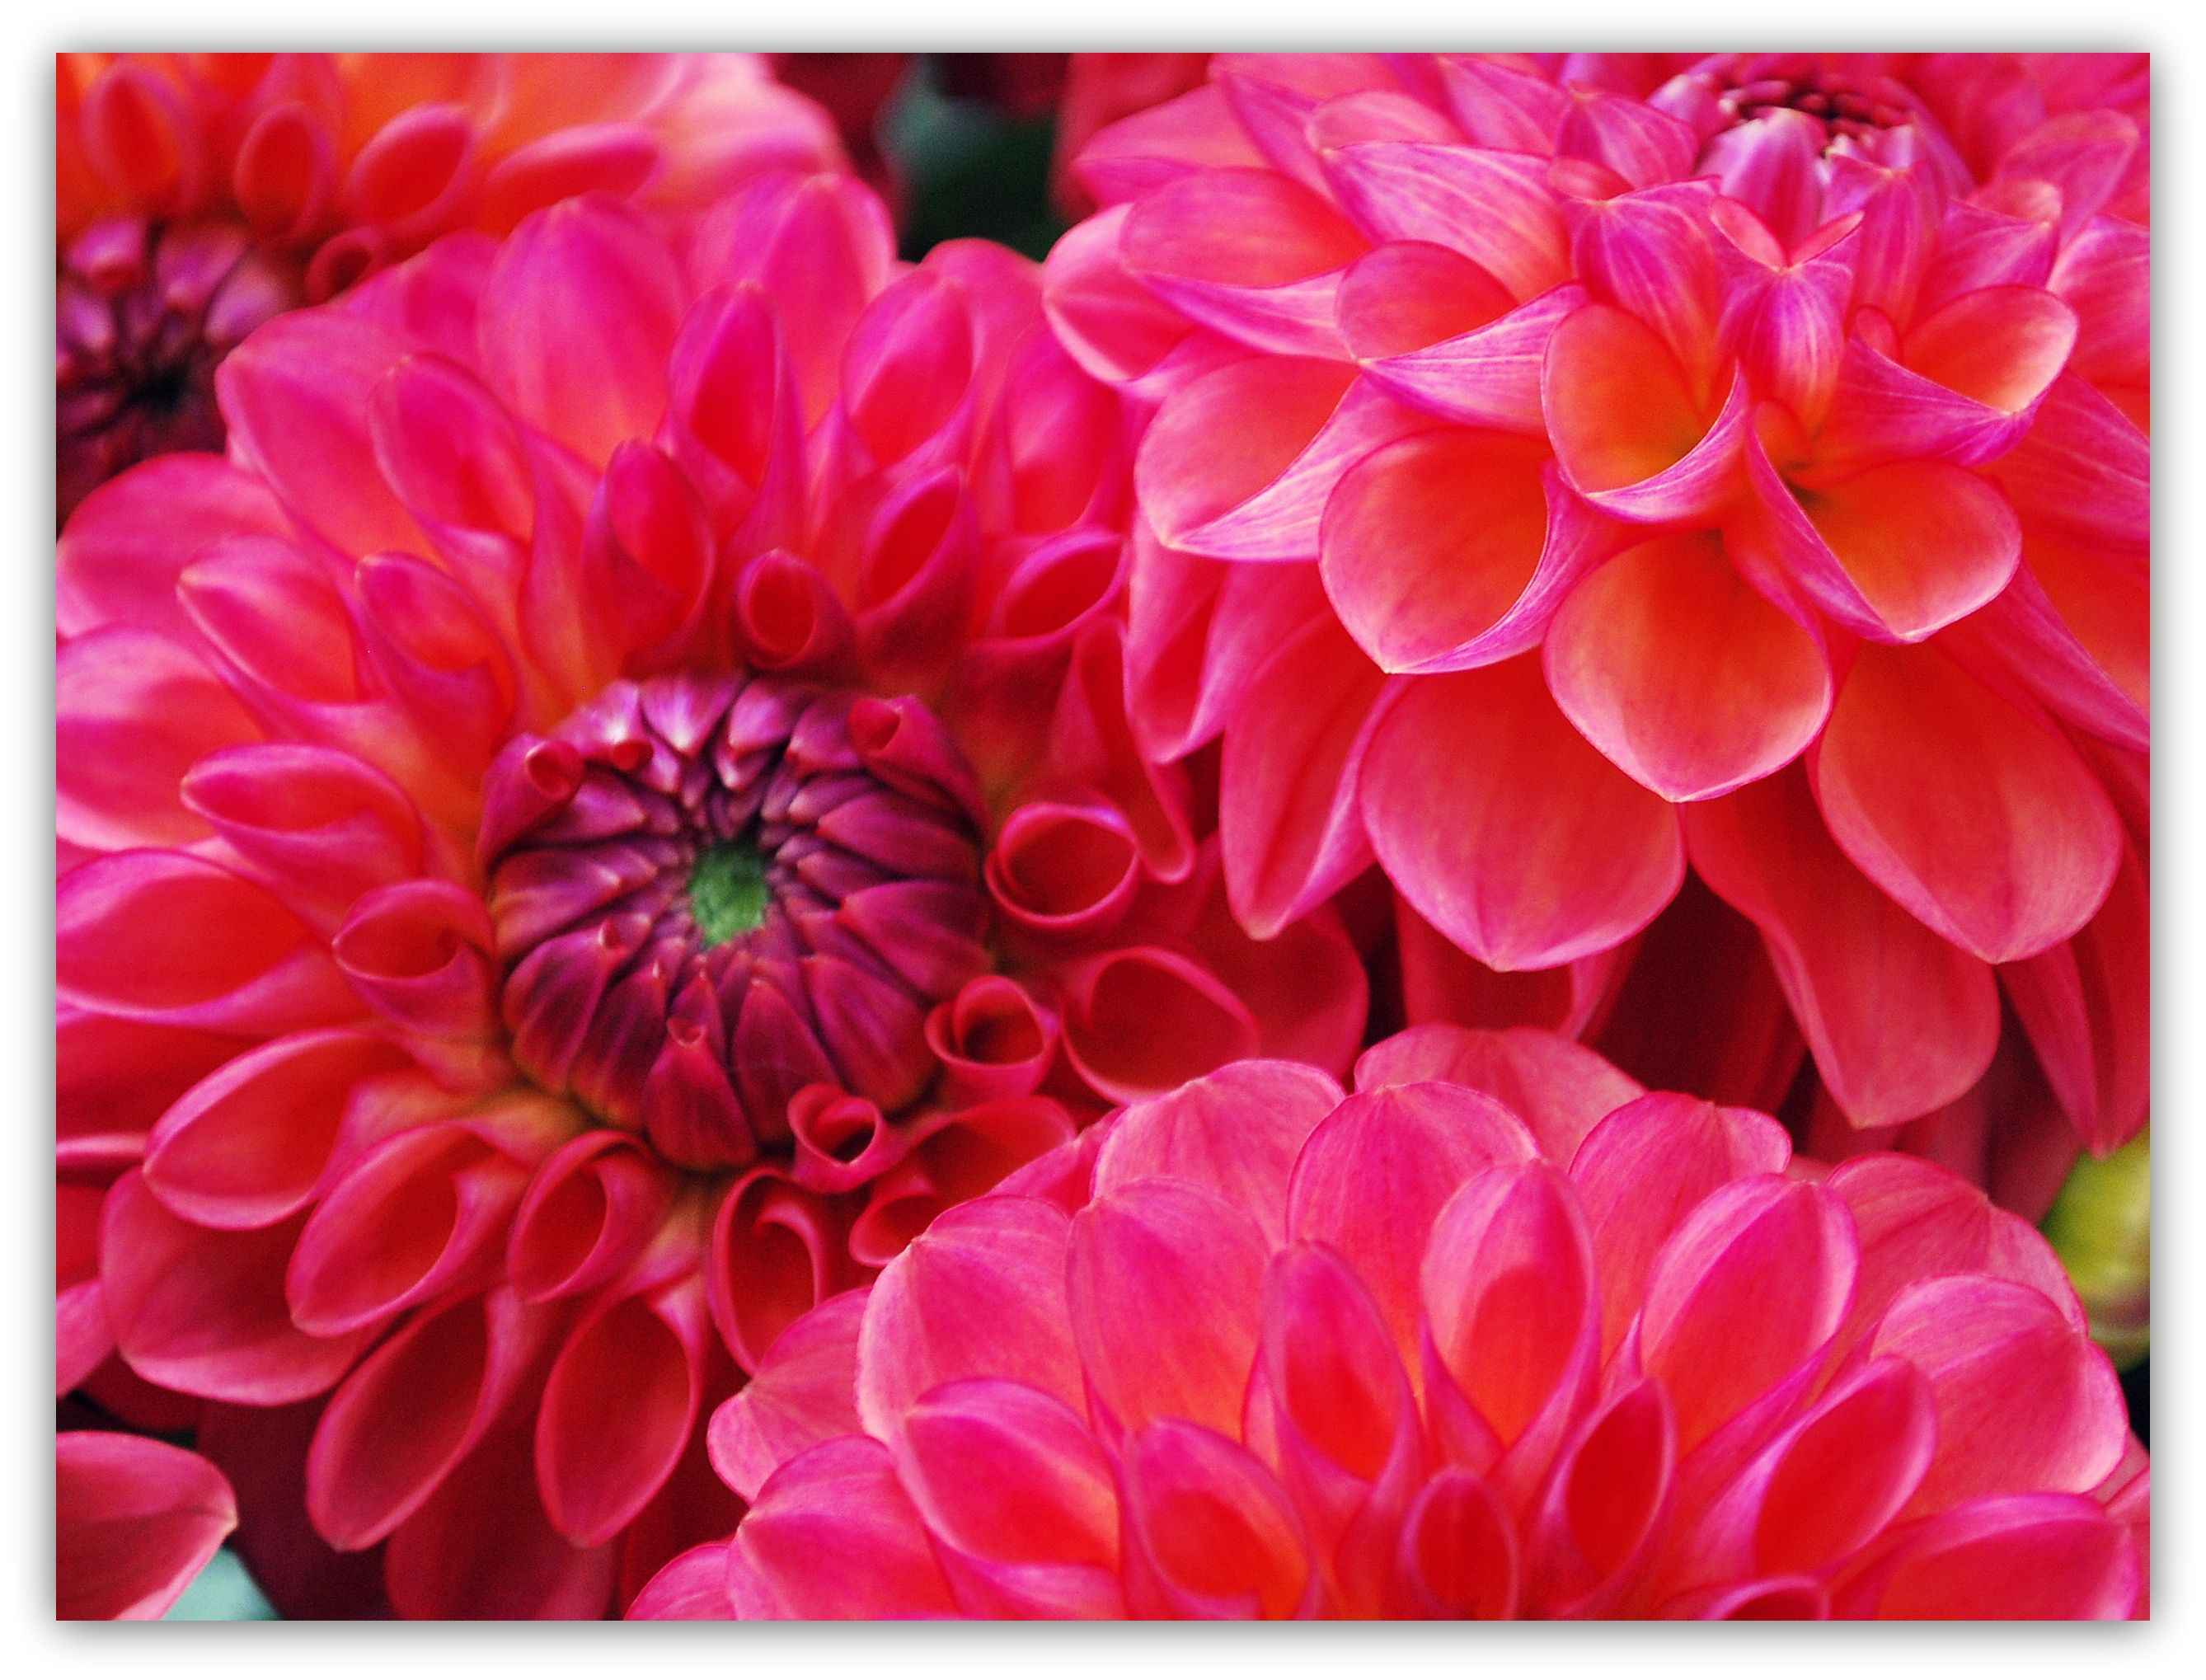 Two Hot Pink Dahlia Hypnotica Flowers Stock Photo - Image ... |Hot Pink Dahlia Flowers